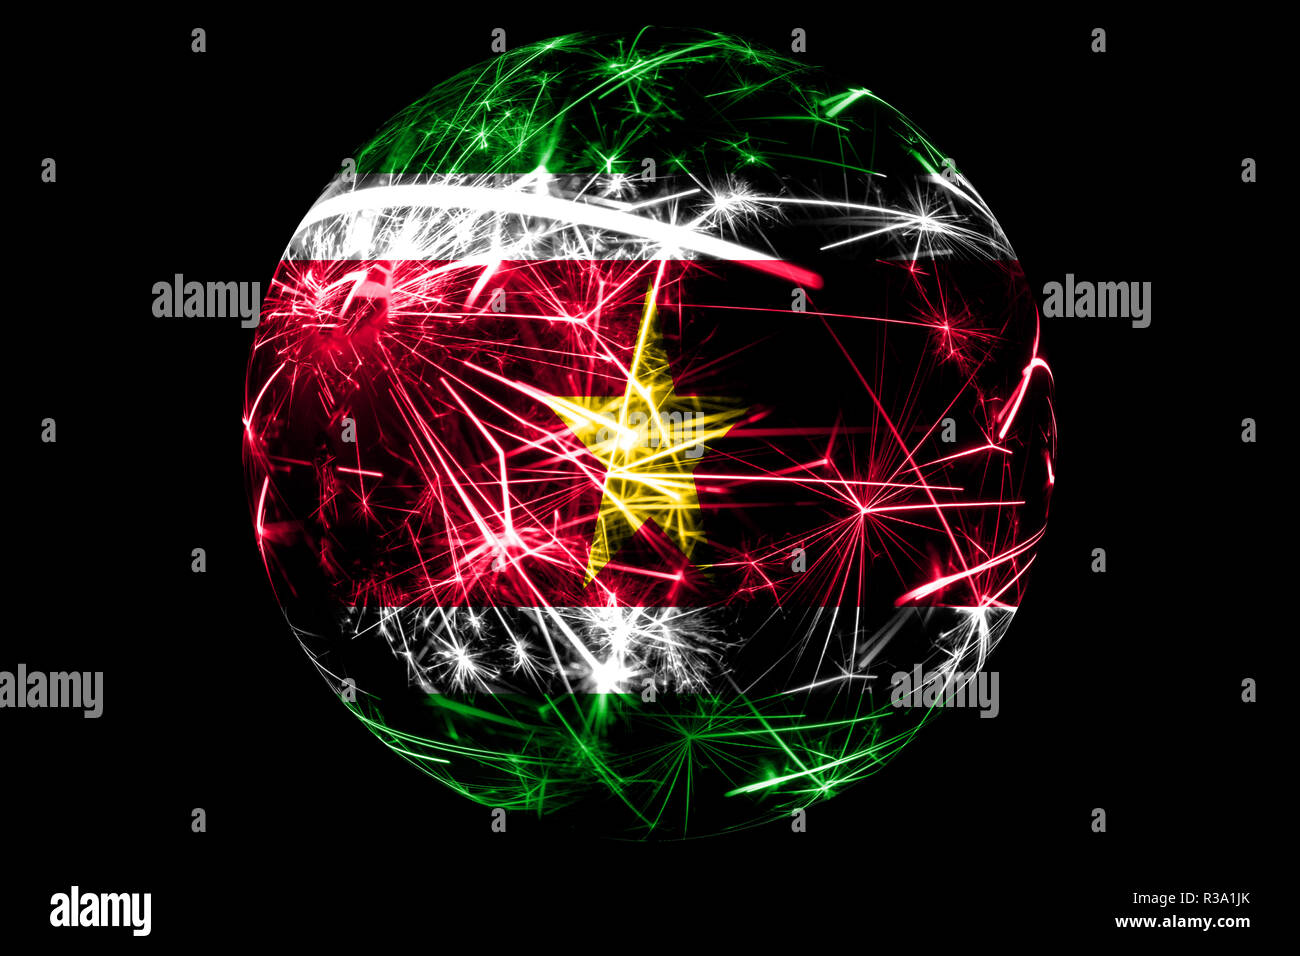 Abstract Suriname sparkling flag, Christmas ball holiday concept isolated on black background - Stock Image